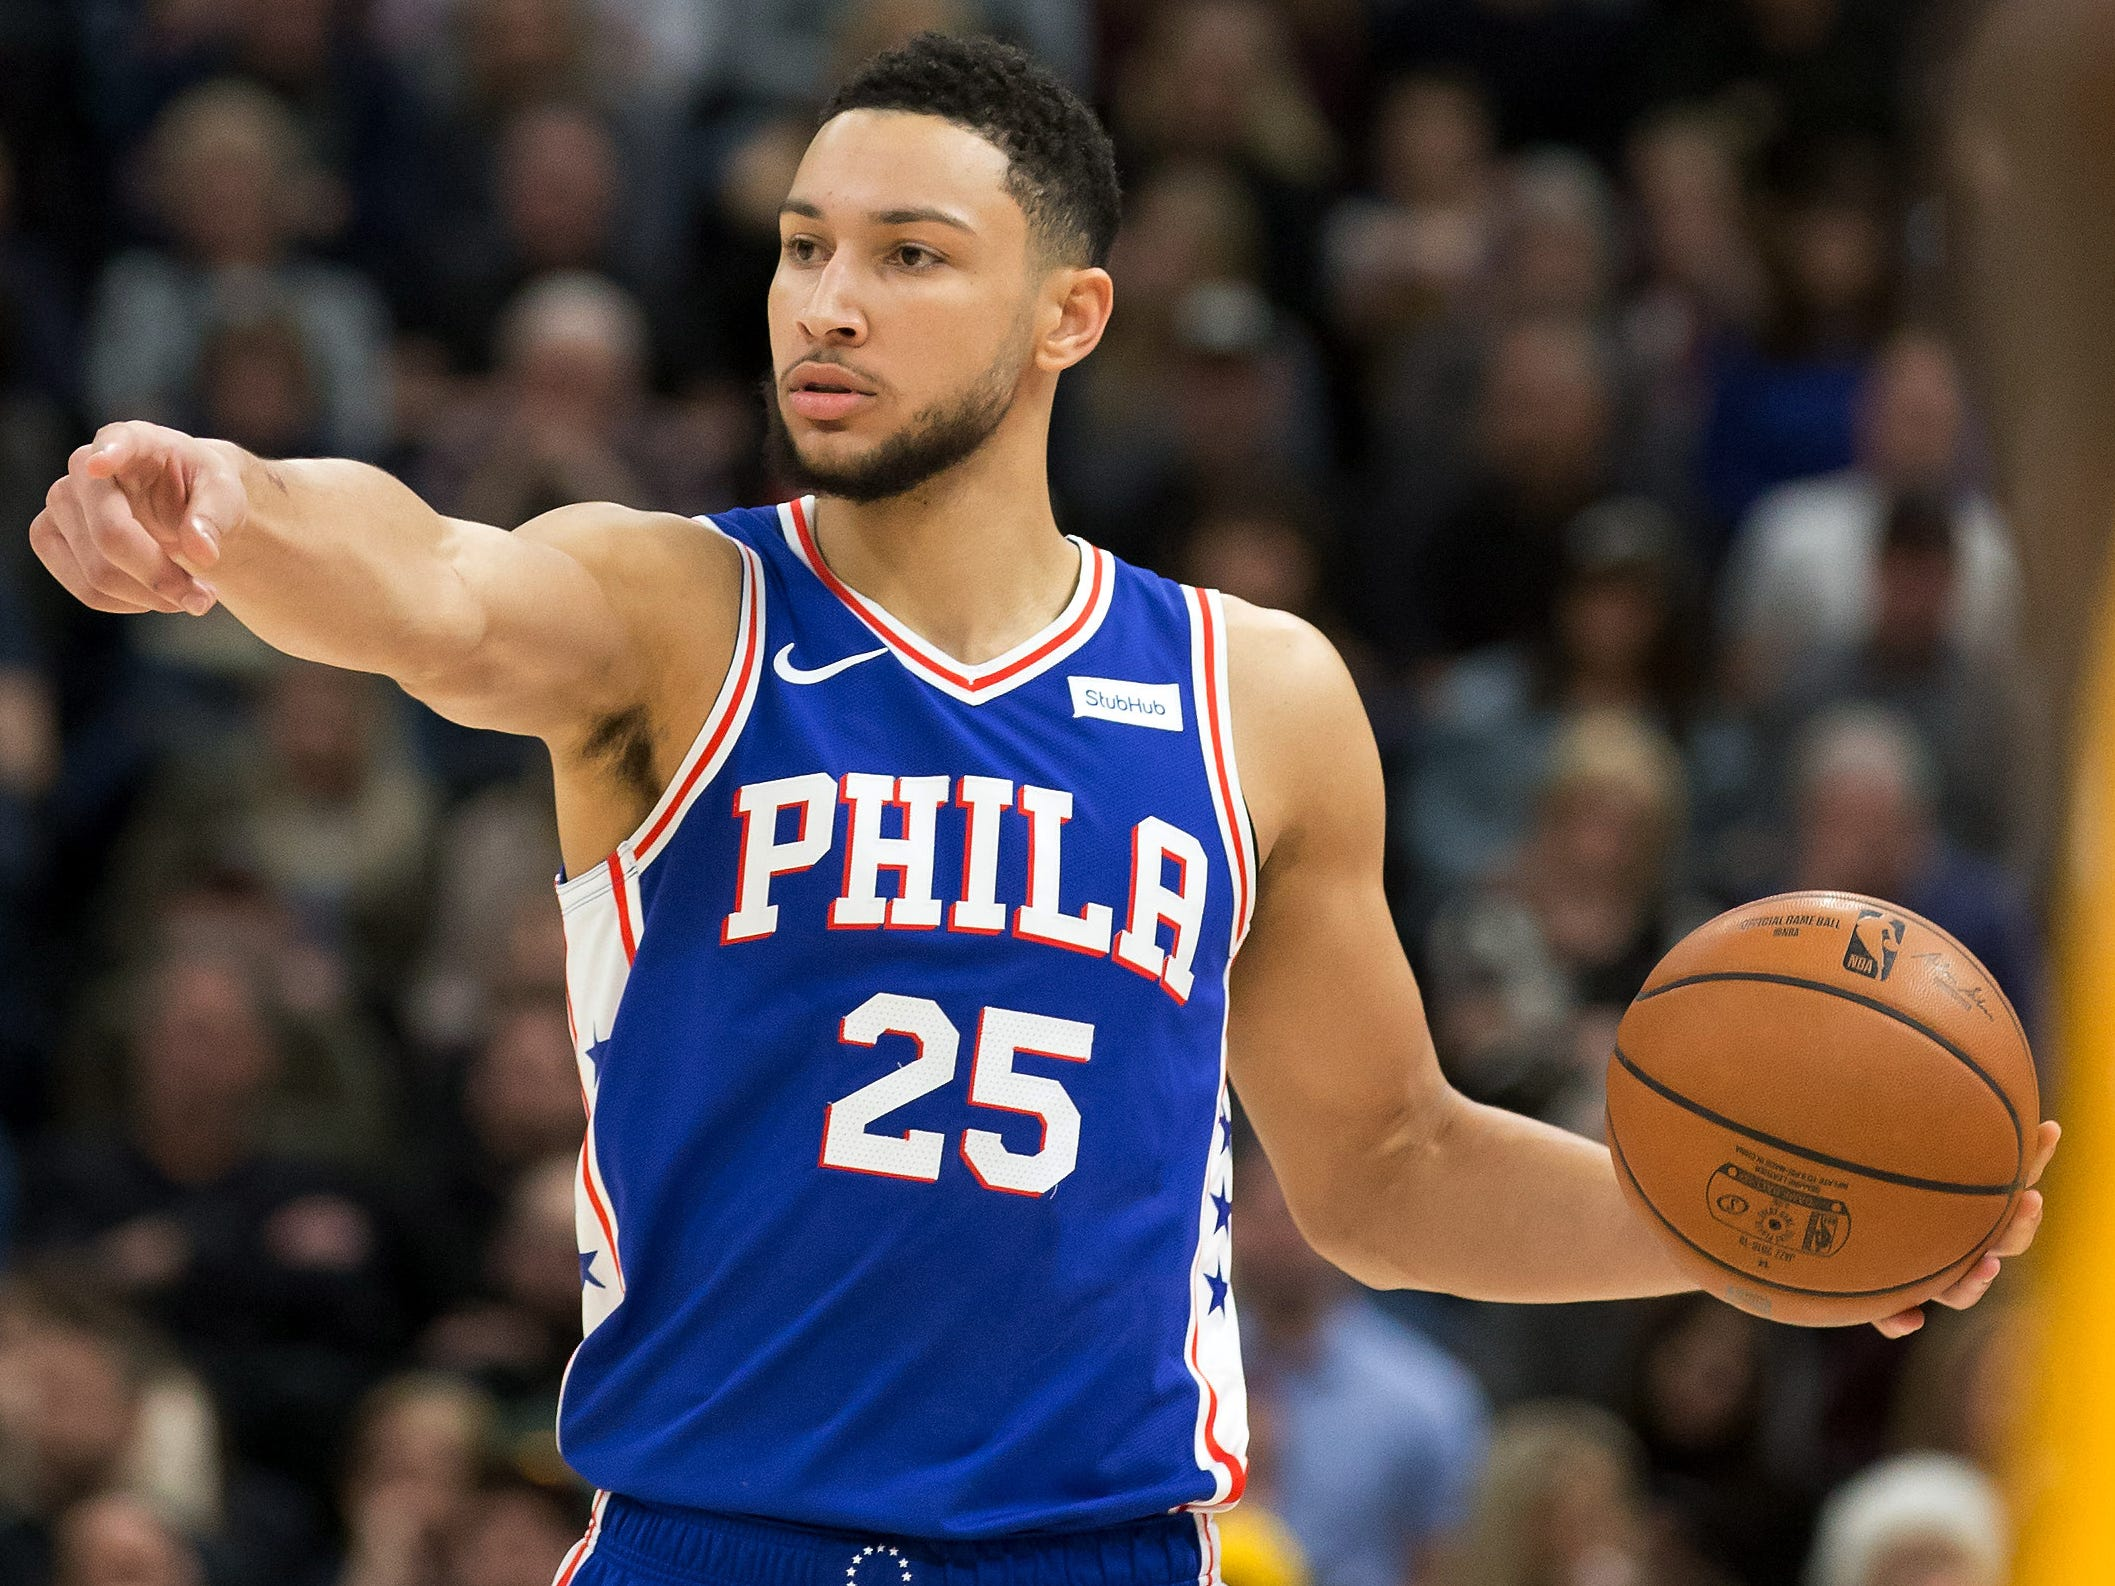 35. Ben Simmons, 76ers (Dec. 28): 14 points, 14 rebounds, 12 assist in 114-97 win over Jazz (fifth of season).